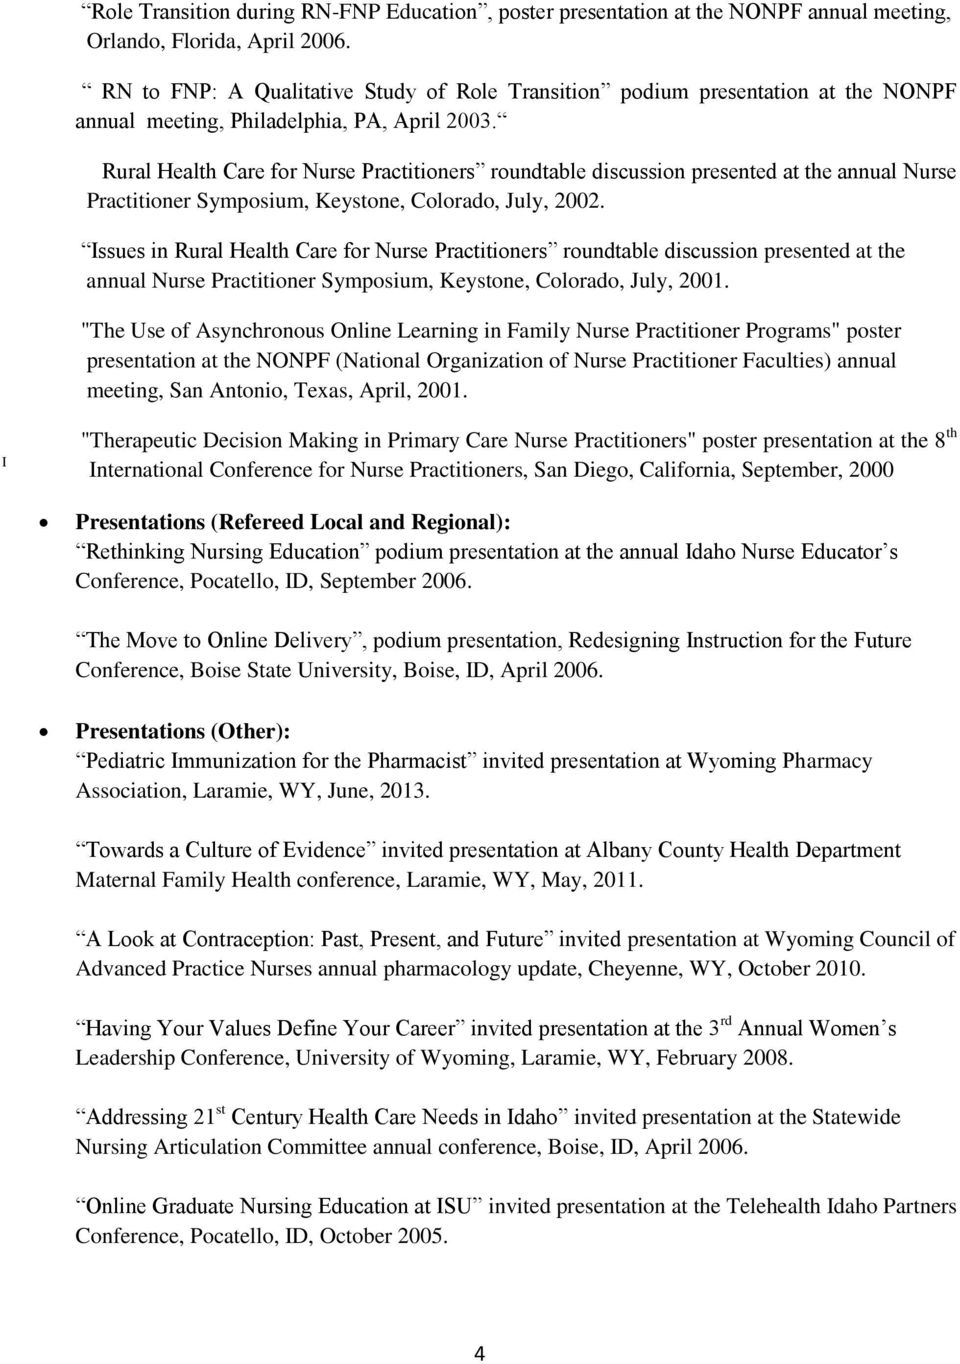 Rural Health Care for Nurse Practitioners roundtable discussion presented at the annual Nurse Practitioner Symposium, Keystone, Colorado, July, 2002.